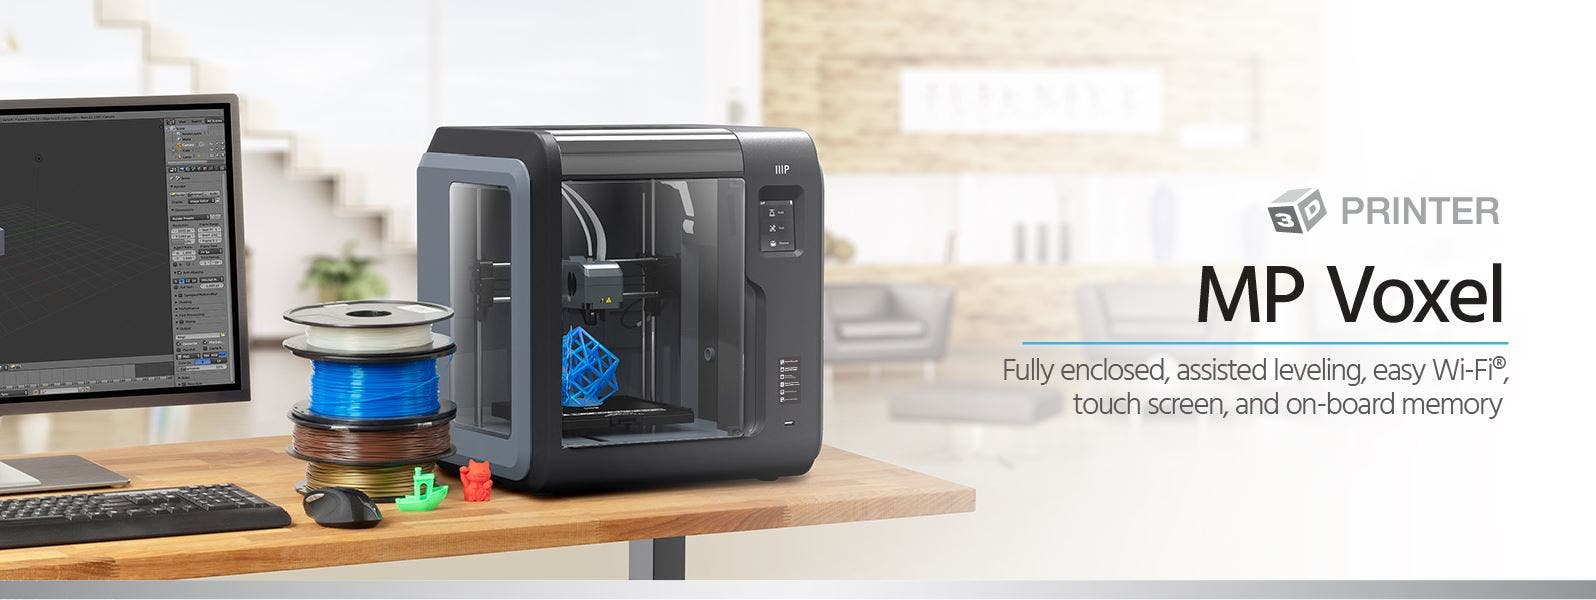 Monoprice MP Voxel 3D Printer, Fully Enclosed, Easy Wi-Fi, Touch